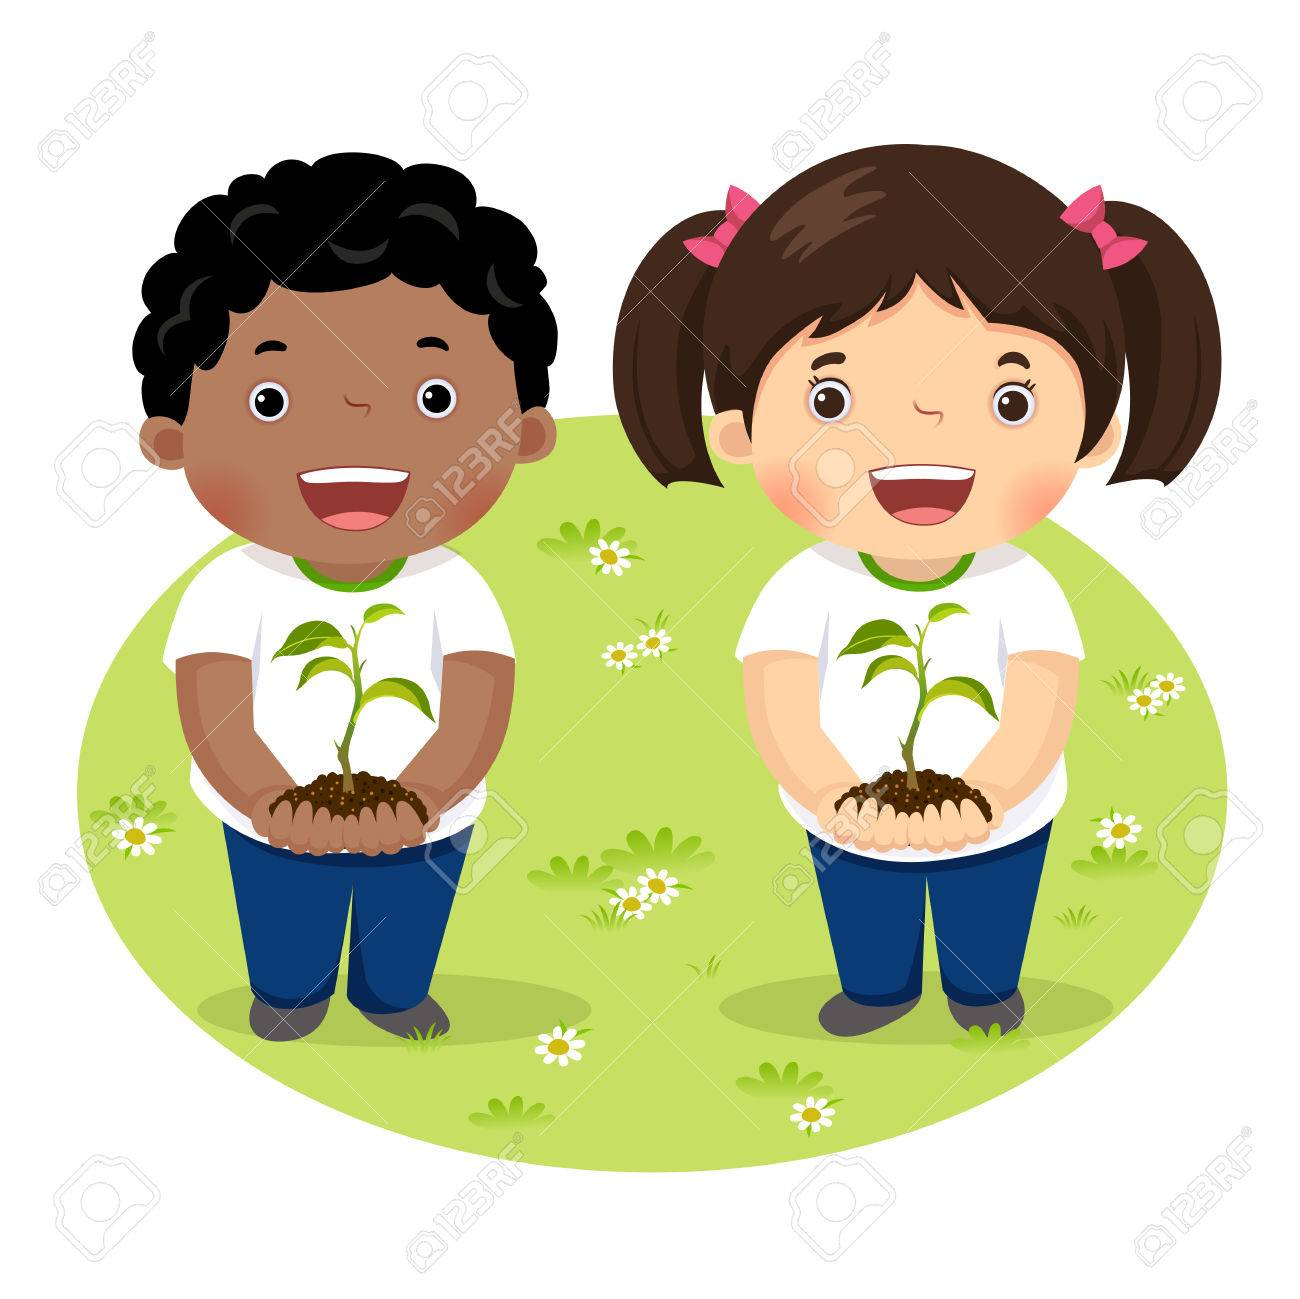 Kids holding young plant - 77509431